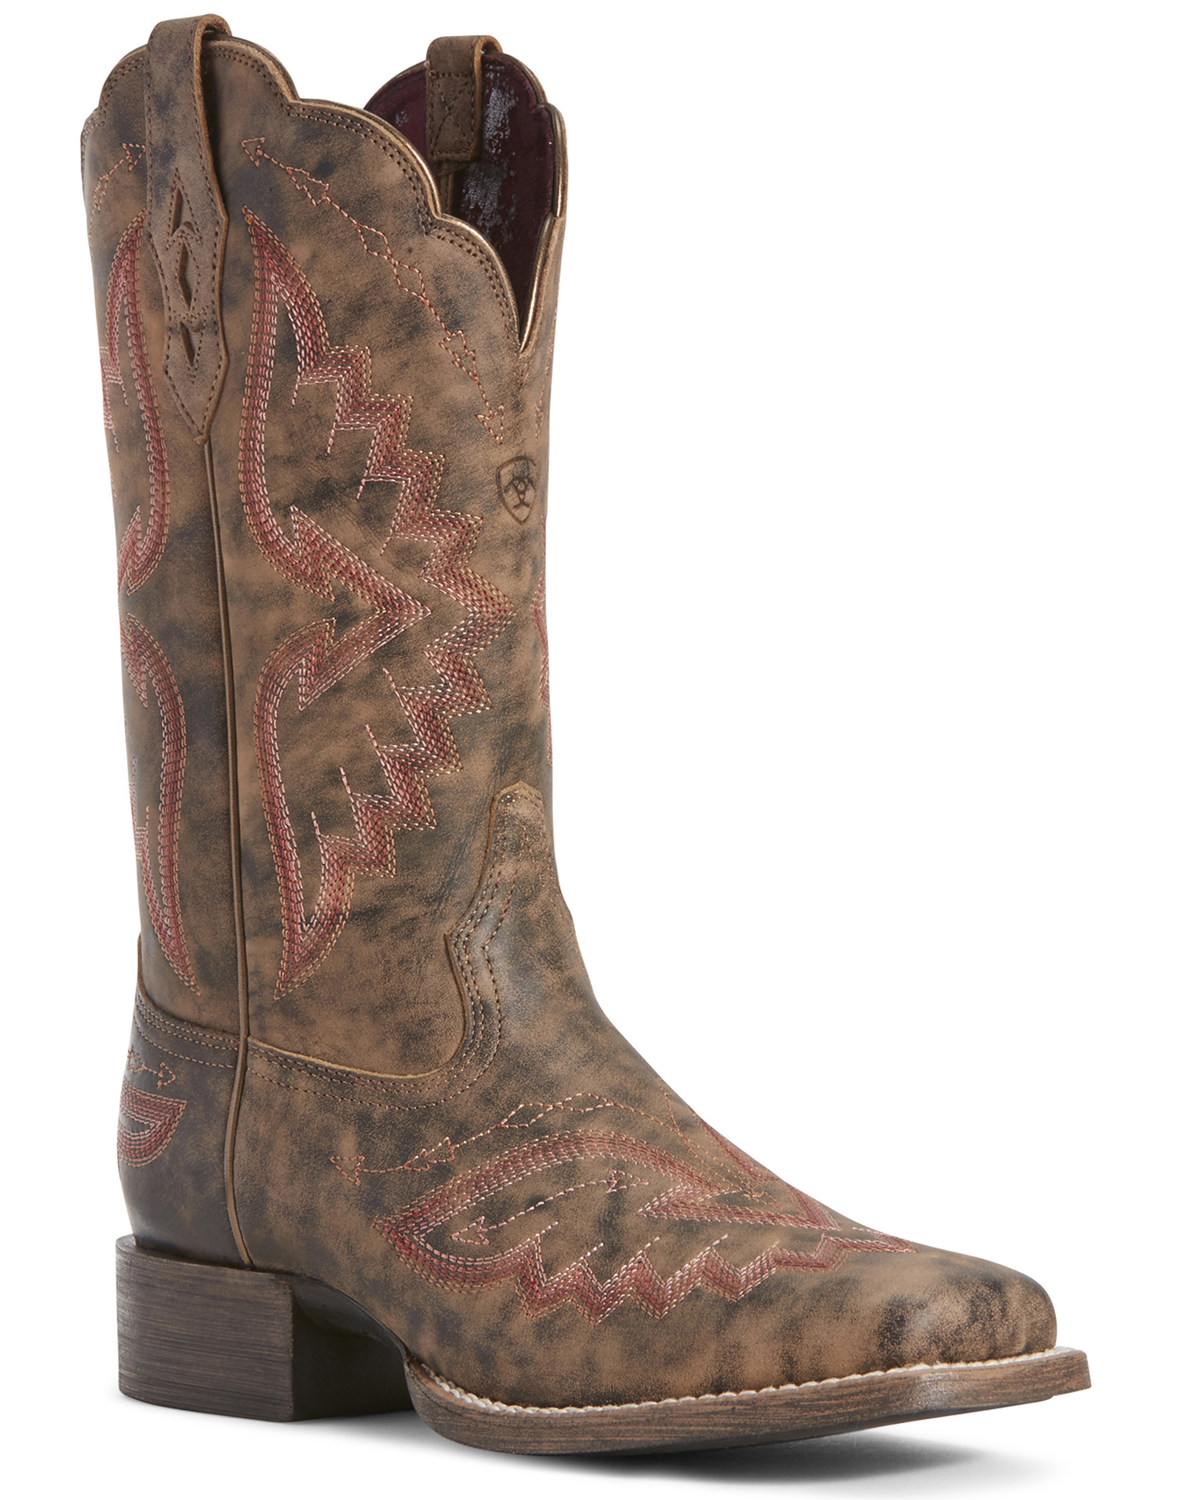 3562e15c8b8 Ariat Women's Round Up Santa Fe Western Boots - Wide Square Toe